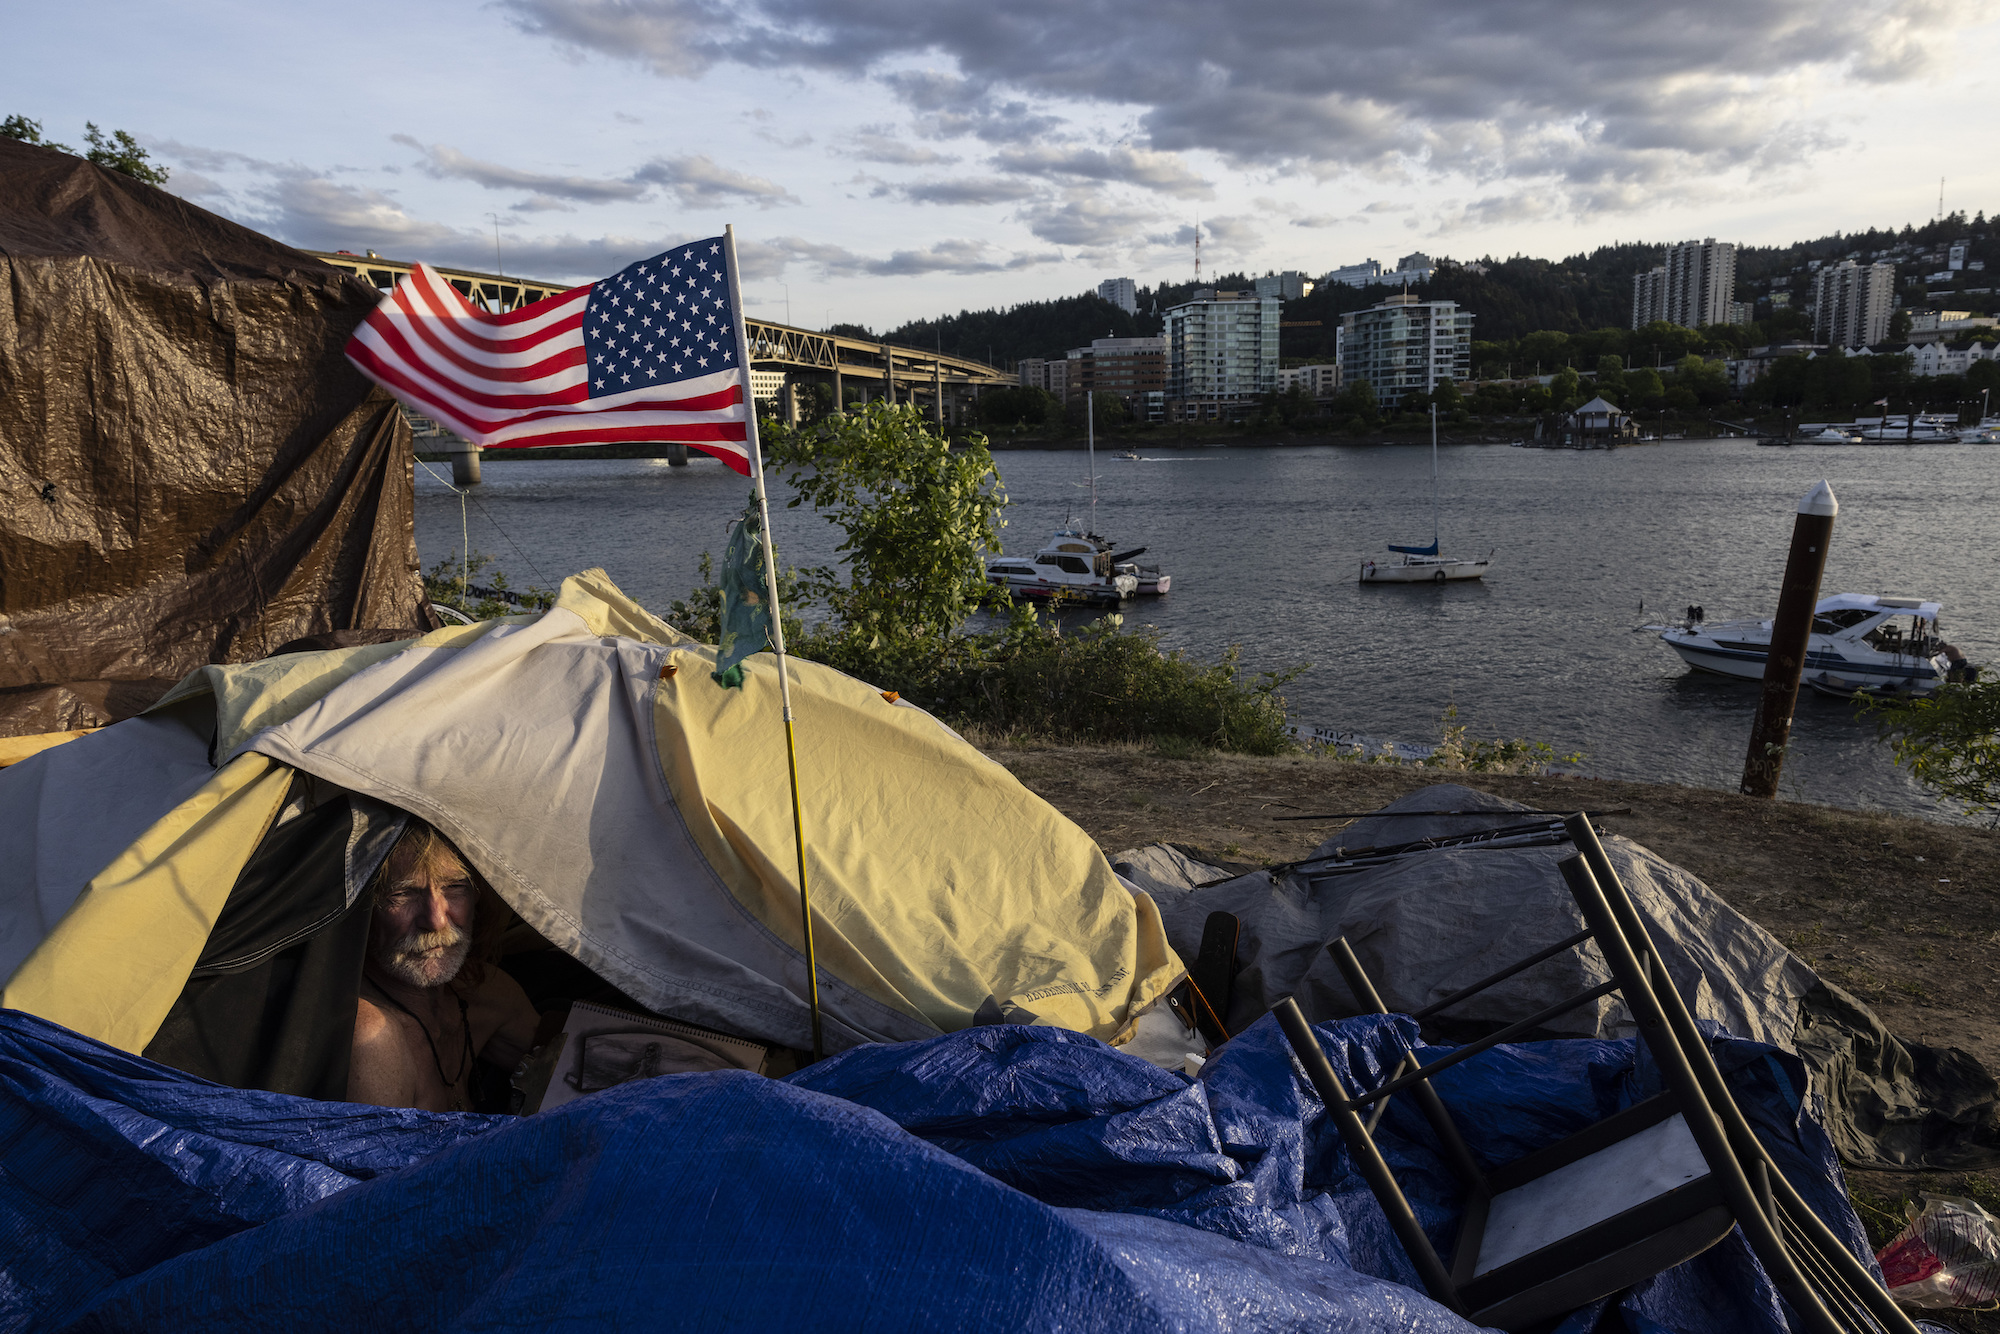 a bearded man in a yellow tent with blue tarp looks out of the flap. Outside of the tent is an American flag. The tent is on a beach with houses in the background and boats in the water.